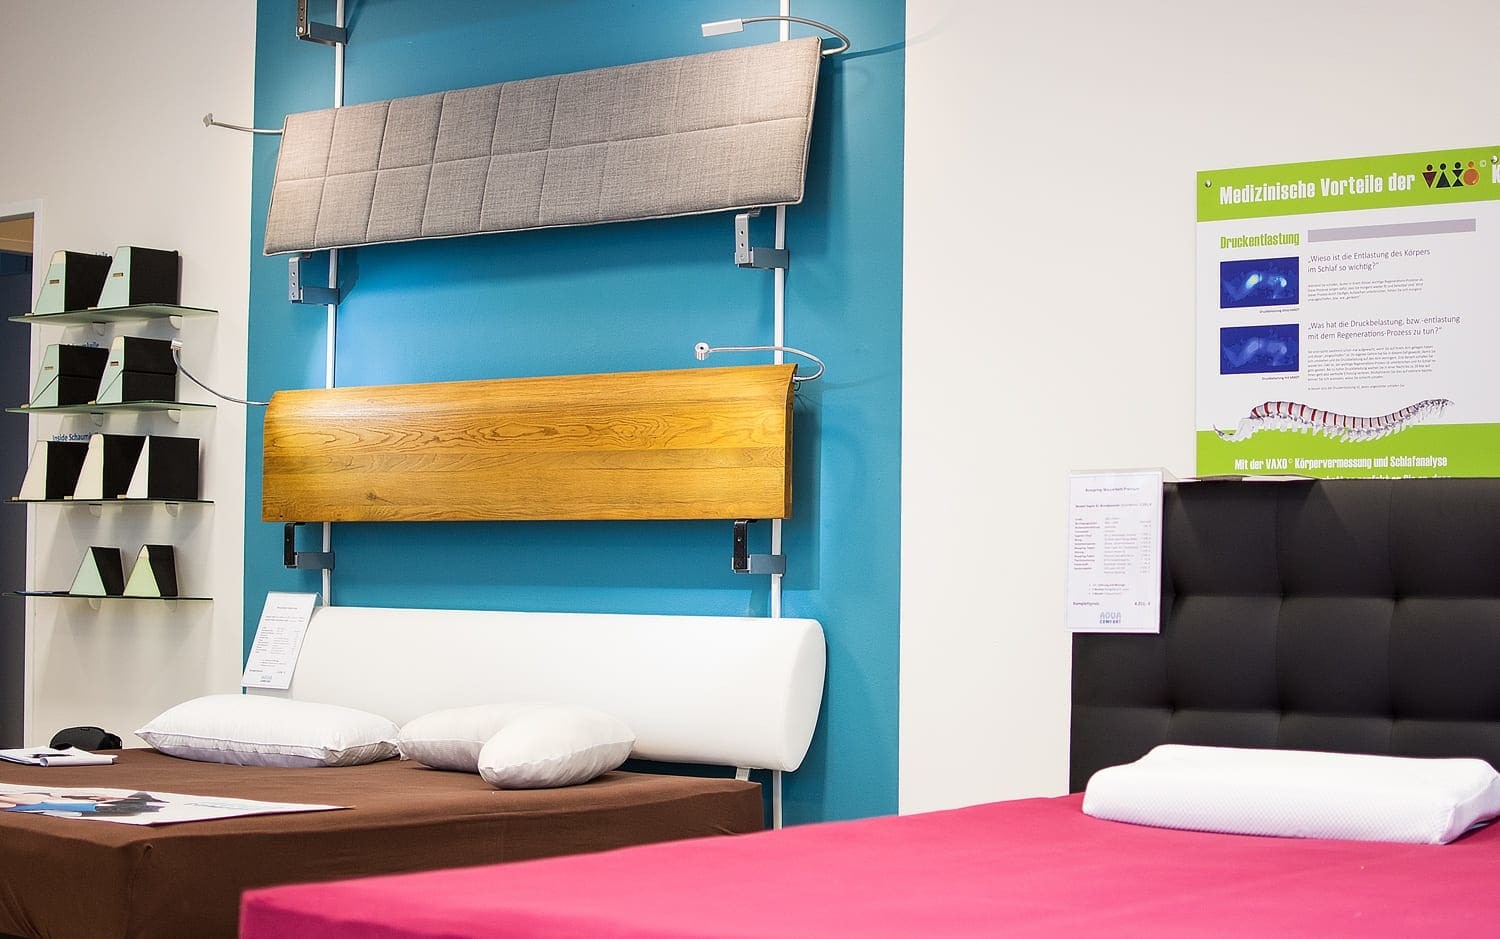 aqua comfort bielefeld filiale und wasserbetten ausstellung. Black Bedroom Furniture Sets. Home Design Ideas